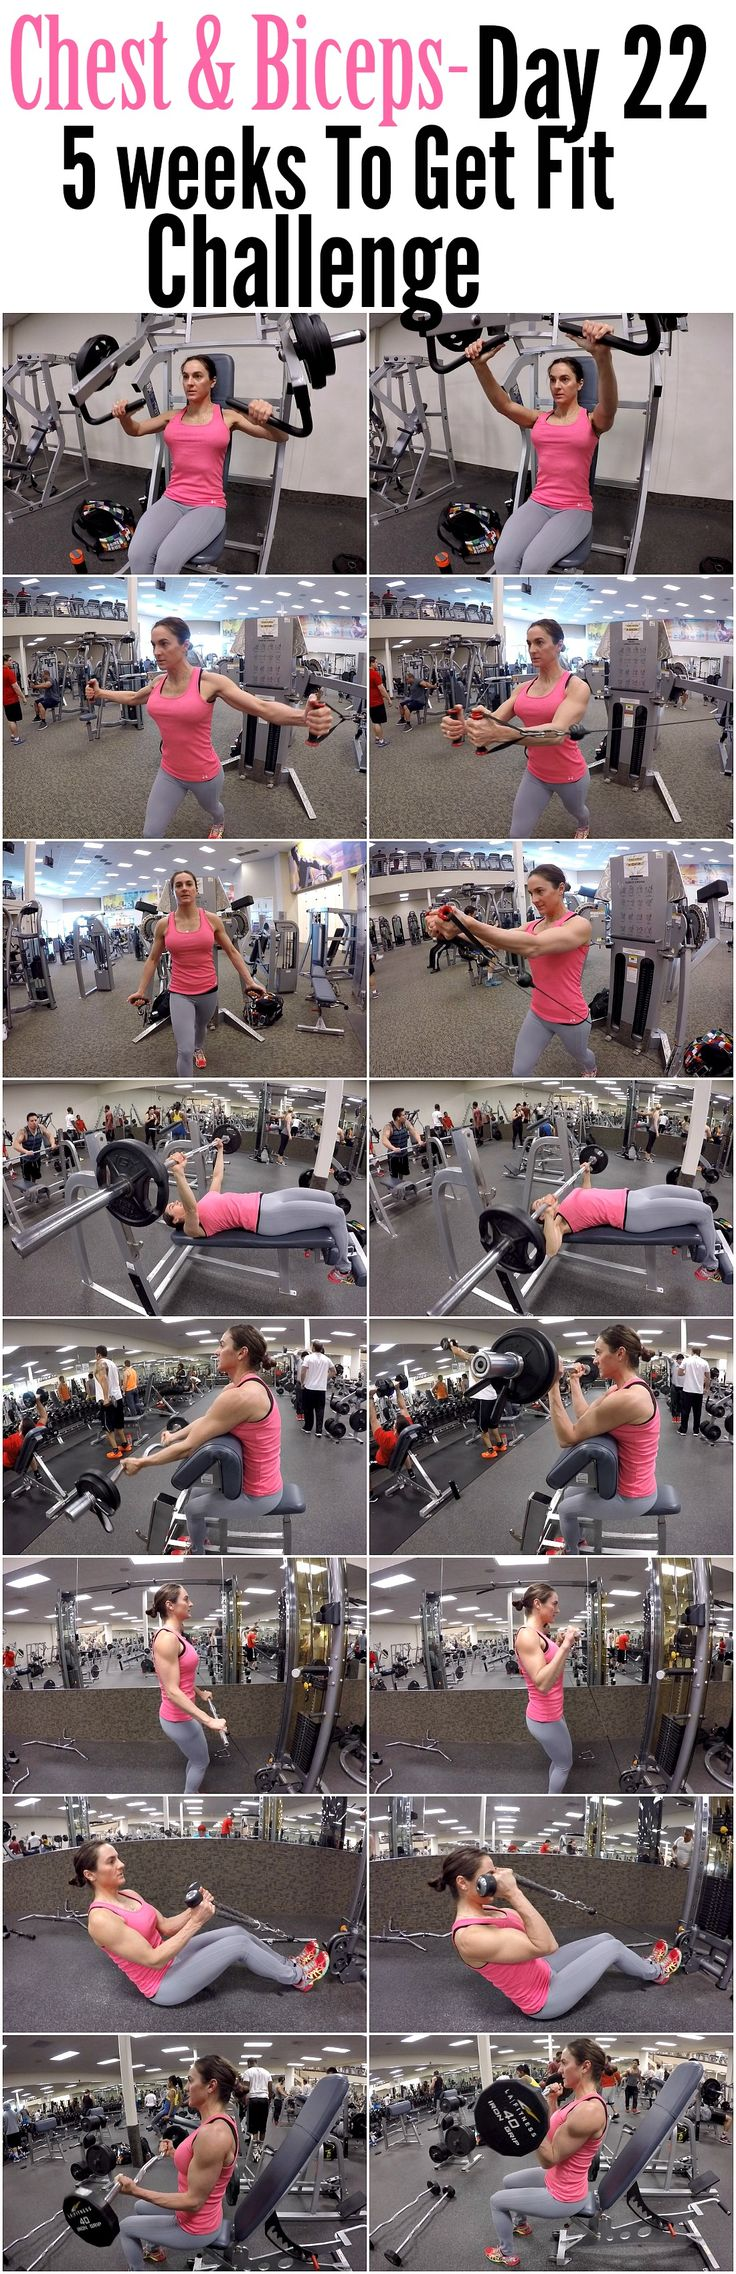 5 Weeks To Get Fit Challenge Day 22-Chest & Biceps.